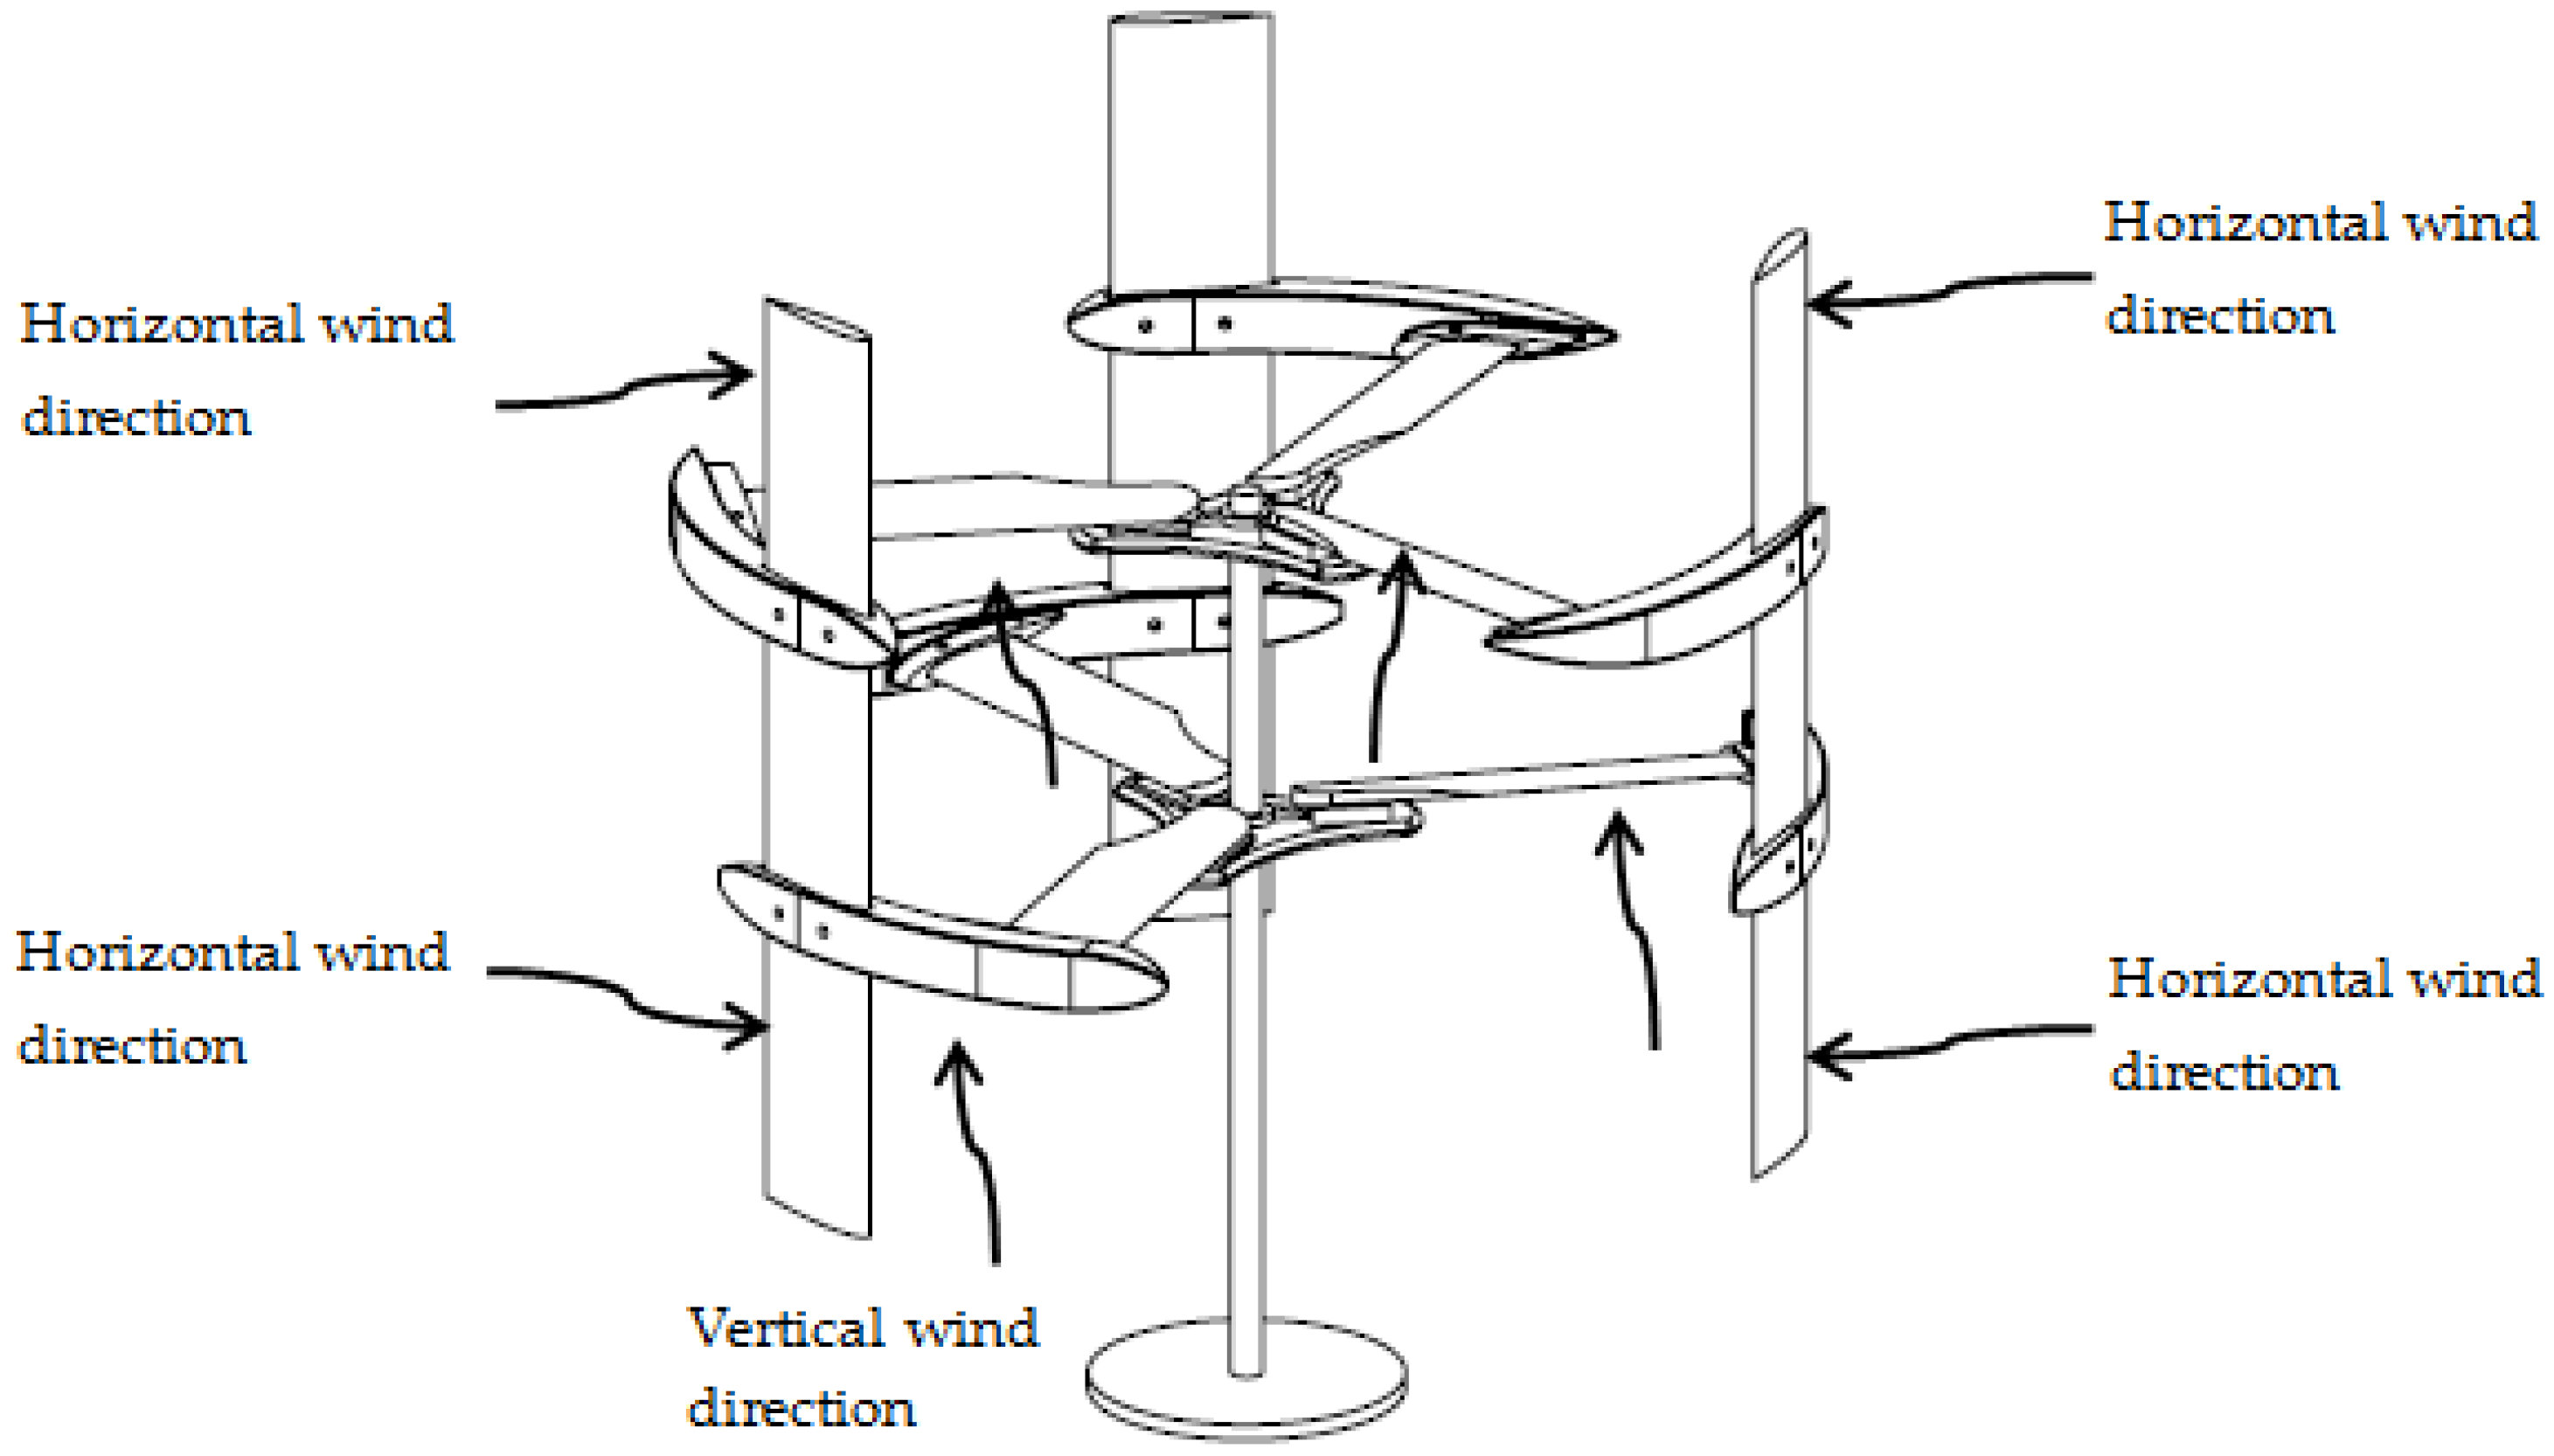 Homemade Vertical Axis Wind Turbine Plans